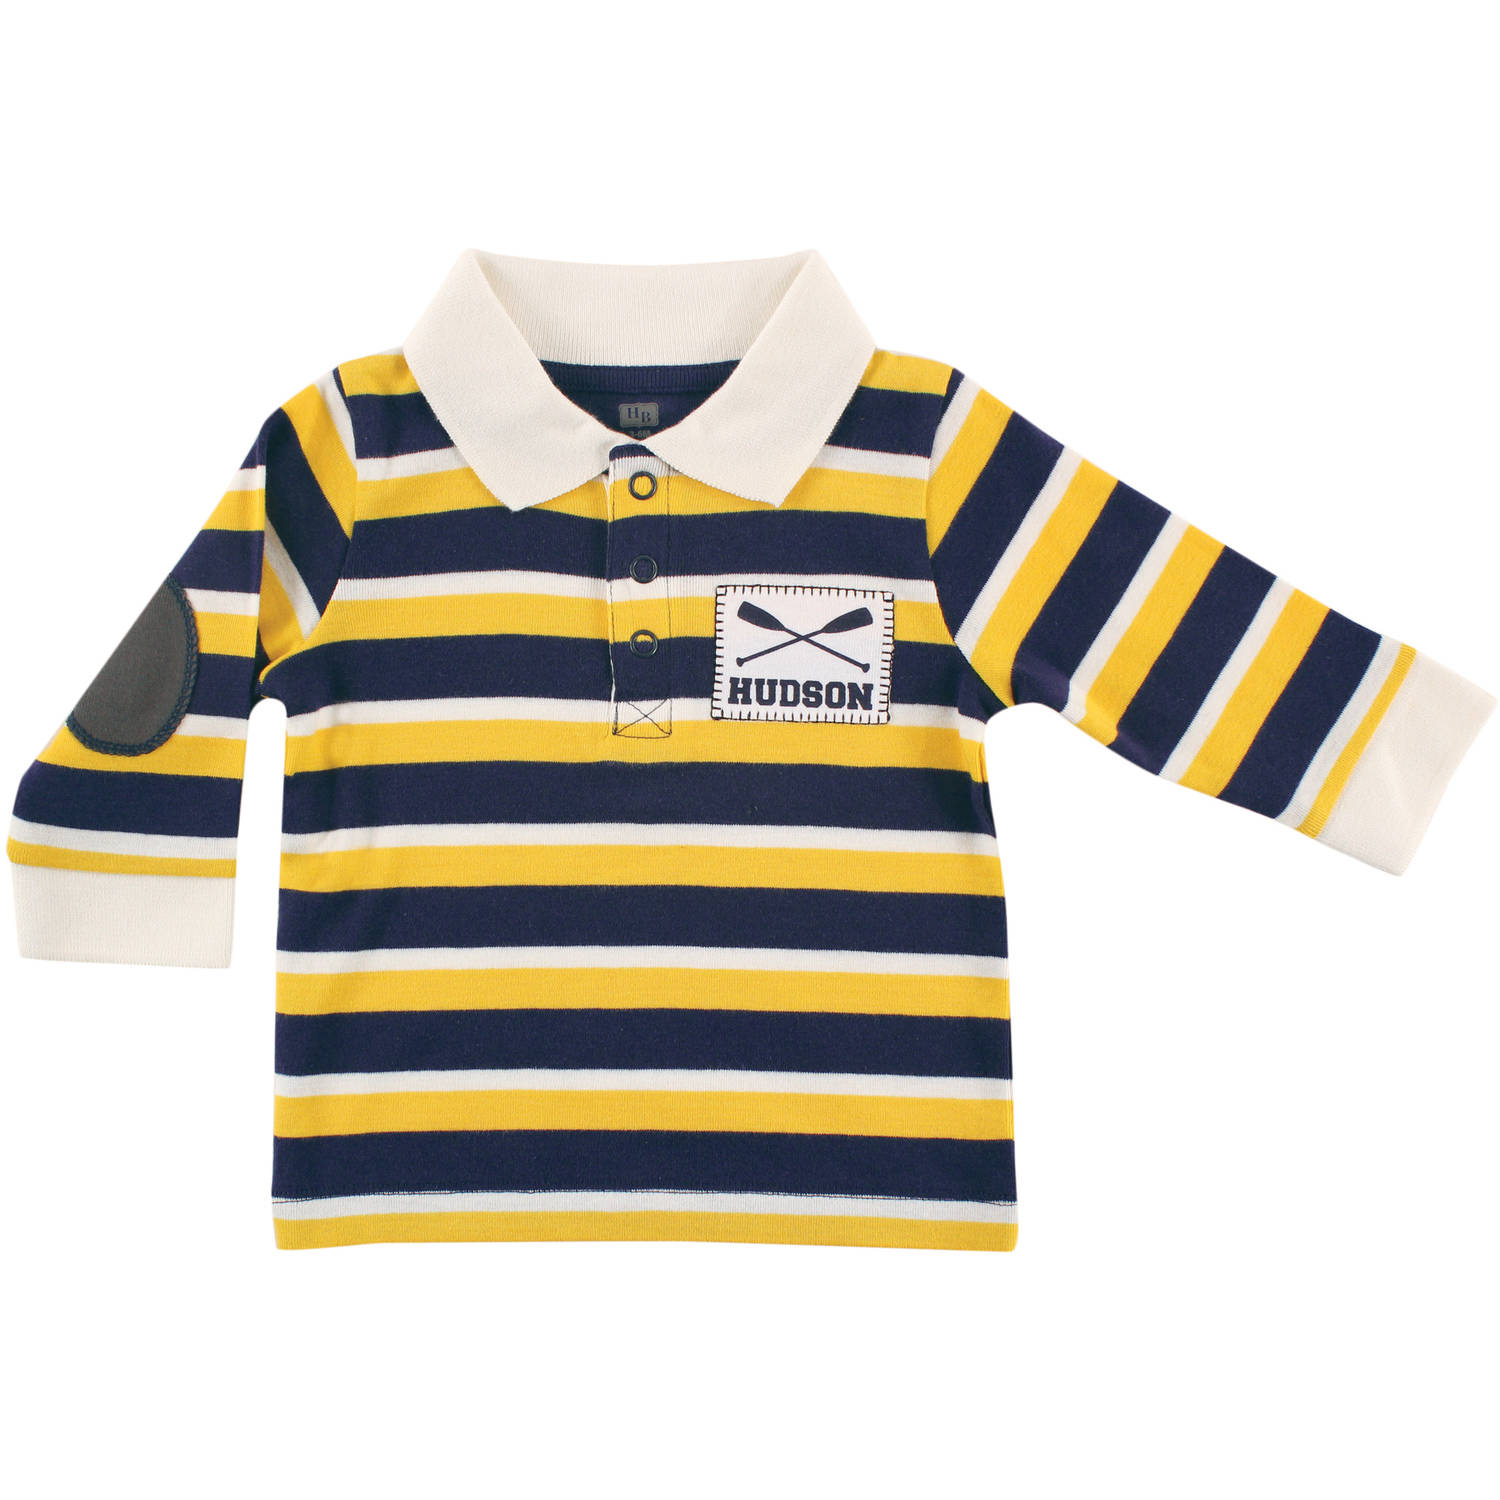 Hudson Baby Newborn Baby Boys Long Sleeve Rugby Shirt - Rowing